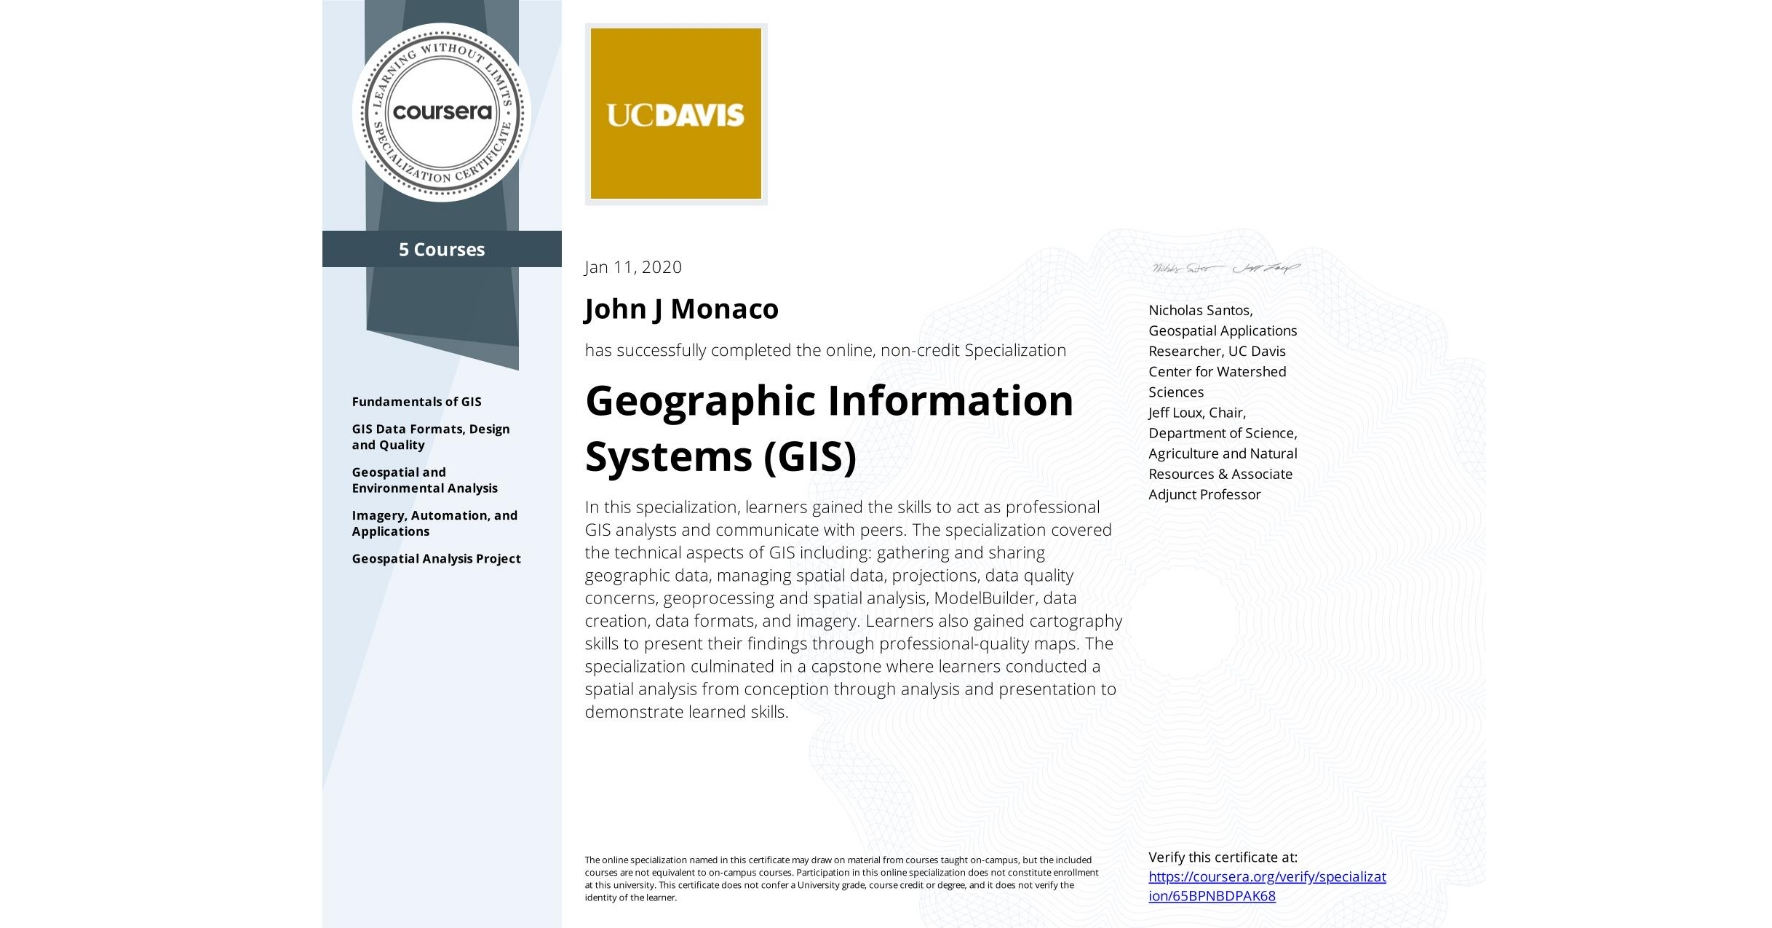 View certificate for John J Monaco, Geographic Information Systems  (GIS), offered through Coursera. In this specialization, learners gained the skills to act as professional GIS analysts and communicate with peers. The specialization covered the technical aspects of GIS including: gathering and sharing geographic data, managing spatial data, projections, data quality concerns, geoprocessing and spatial analysis, ModelBuilder, data creation, data formats, and imagery. Learners also gained cartography skills to present their findings through professional-quality maps. The specialization culminated in a capstone where learners conducted a spatial analysis from conception through analysis and presentation to demonstrate learned skills.